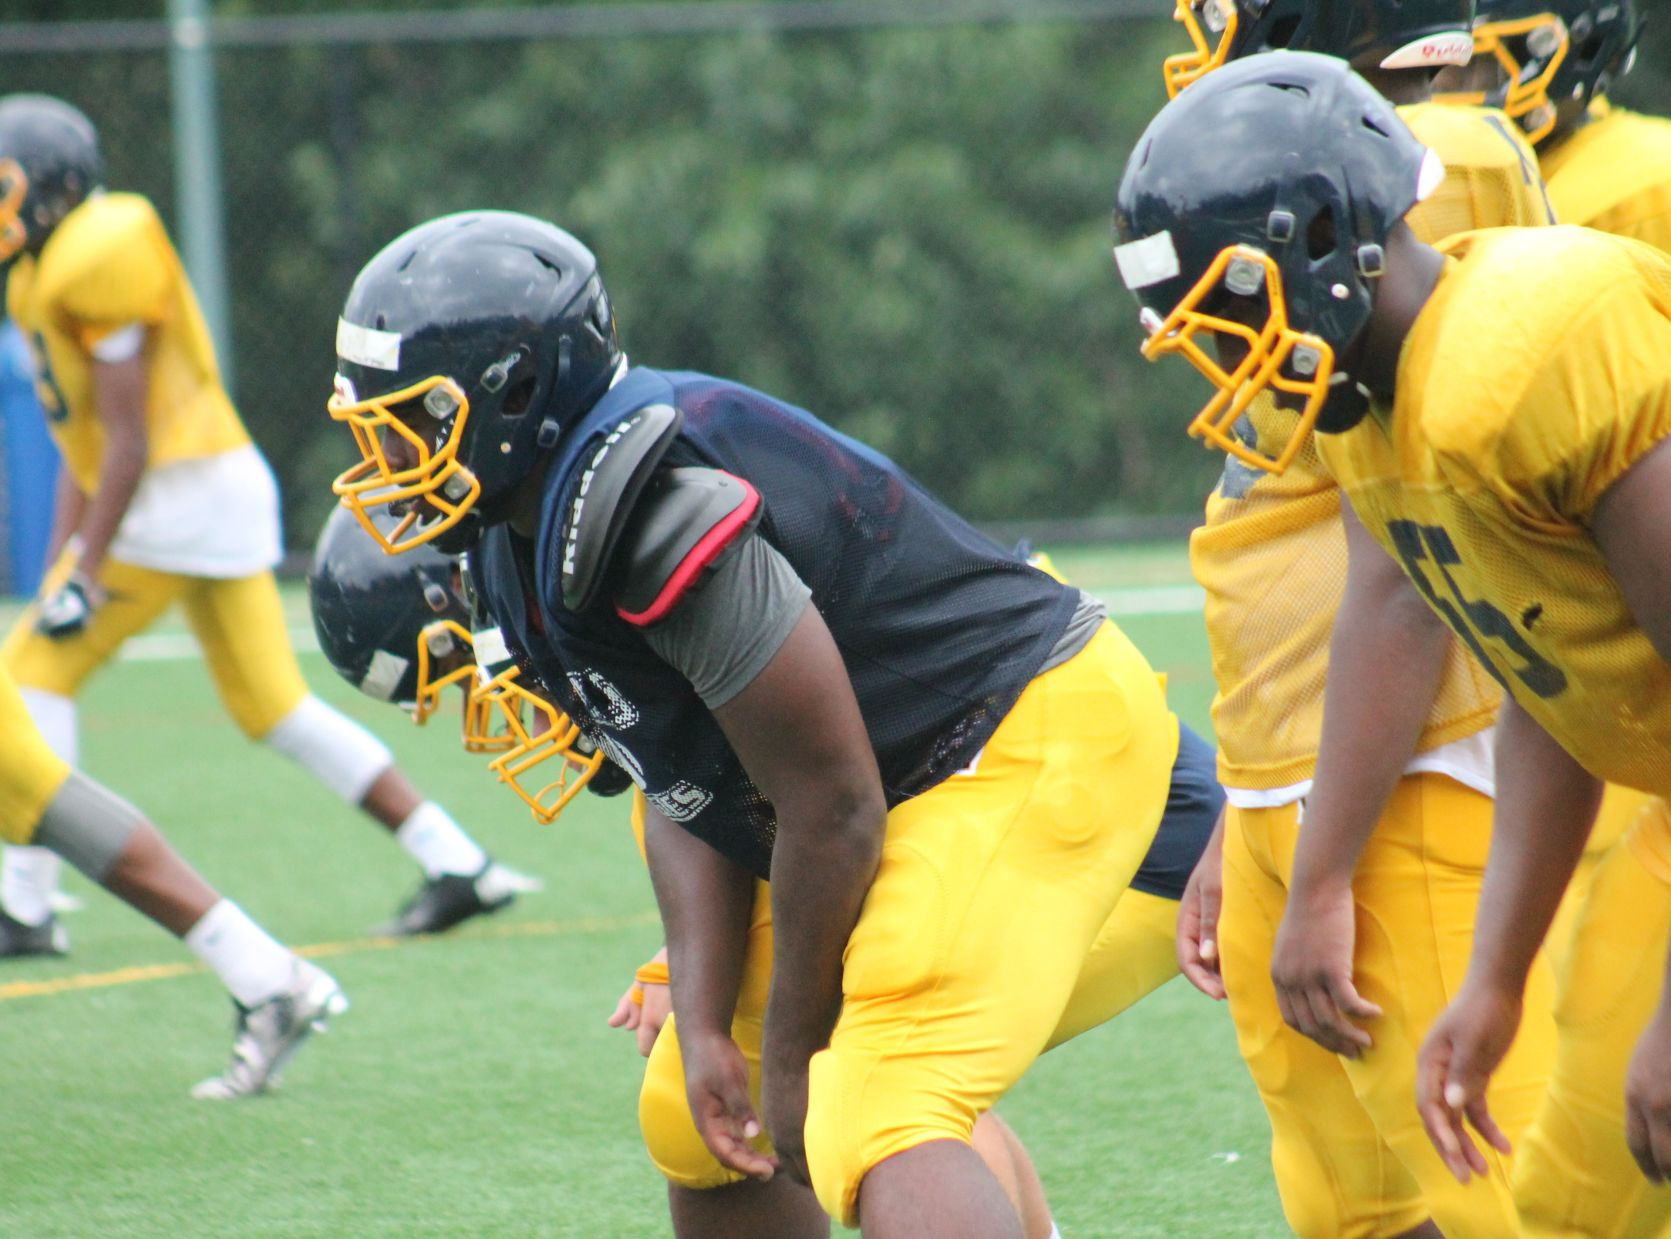 briggs international delta motor wiring diagram recruiting notes uva commits hubbard to play in